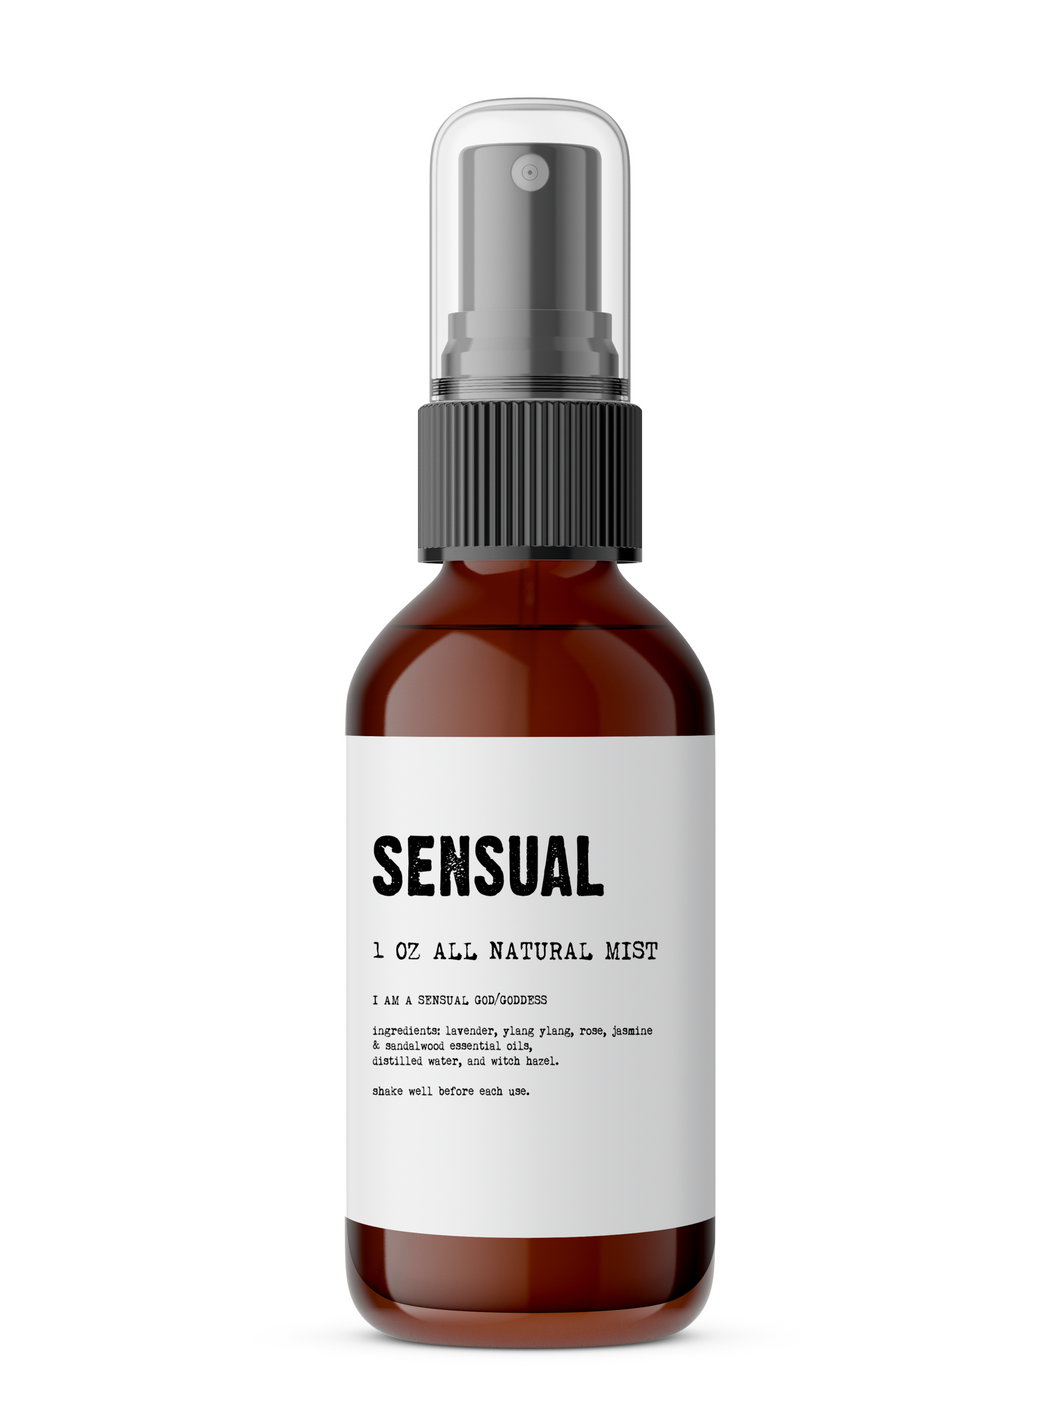 Sensual - Meditation/Body Mist - Made with All